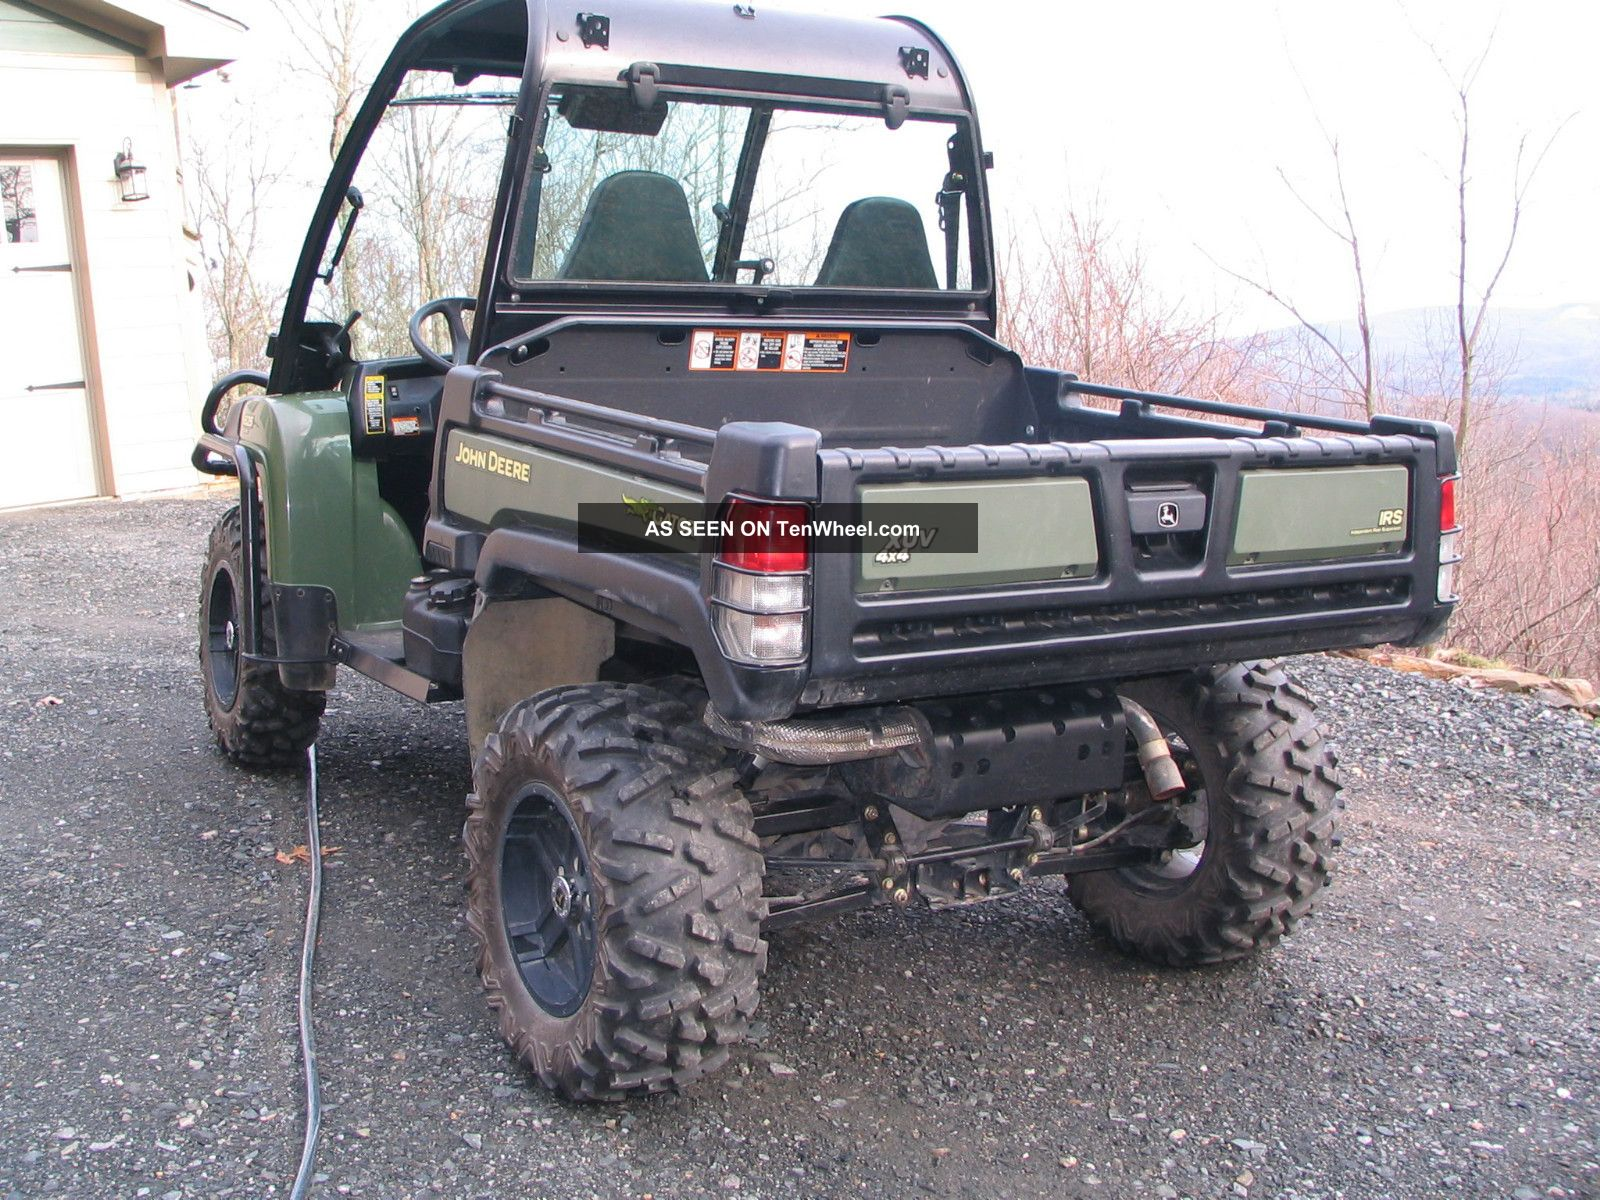 john deere gator xuv 825i 4x4 specs john deere gator html autos weblog. Black Bedroom Furniture Sets. Home Design Ideas